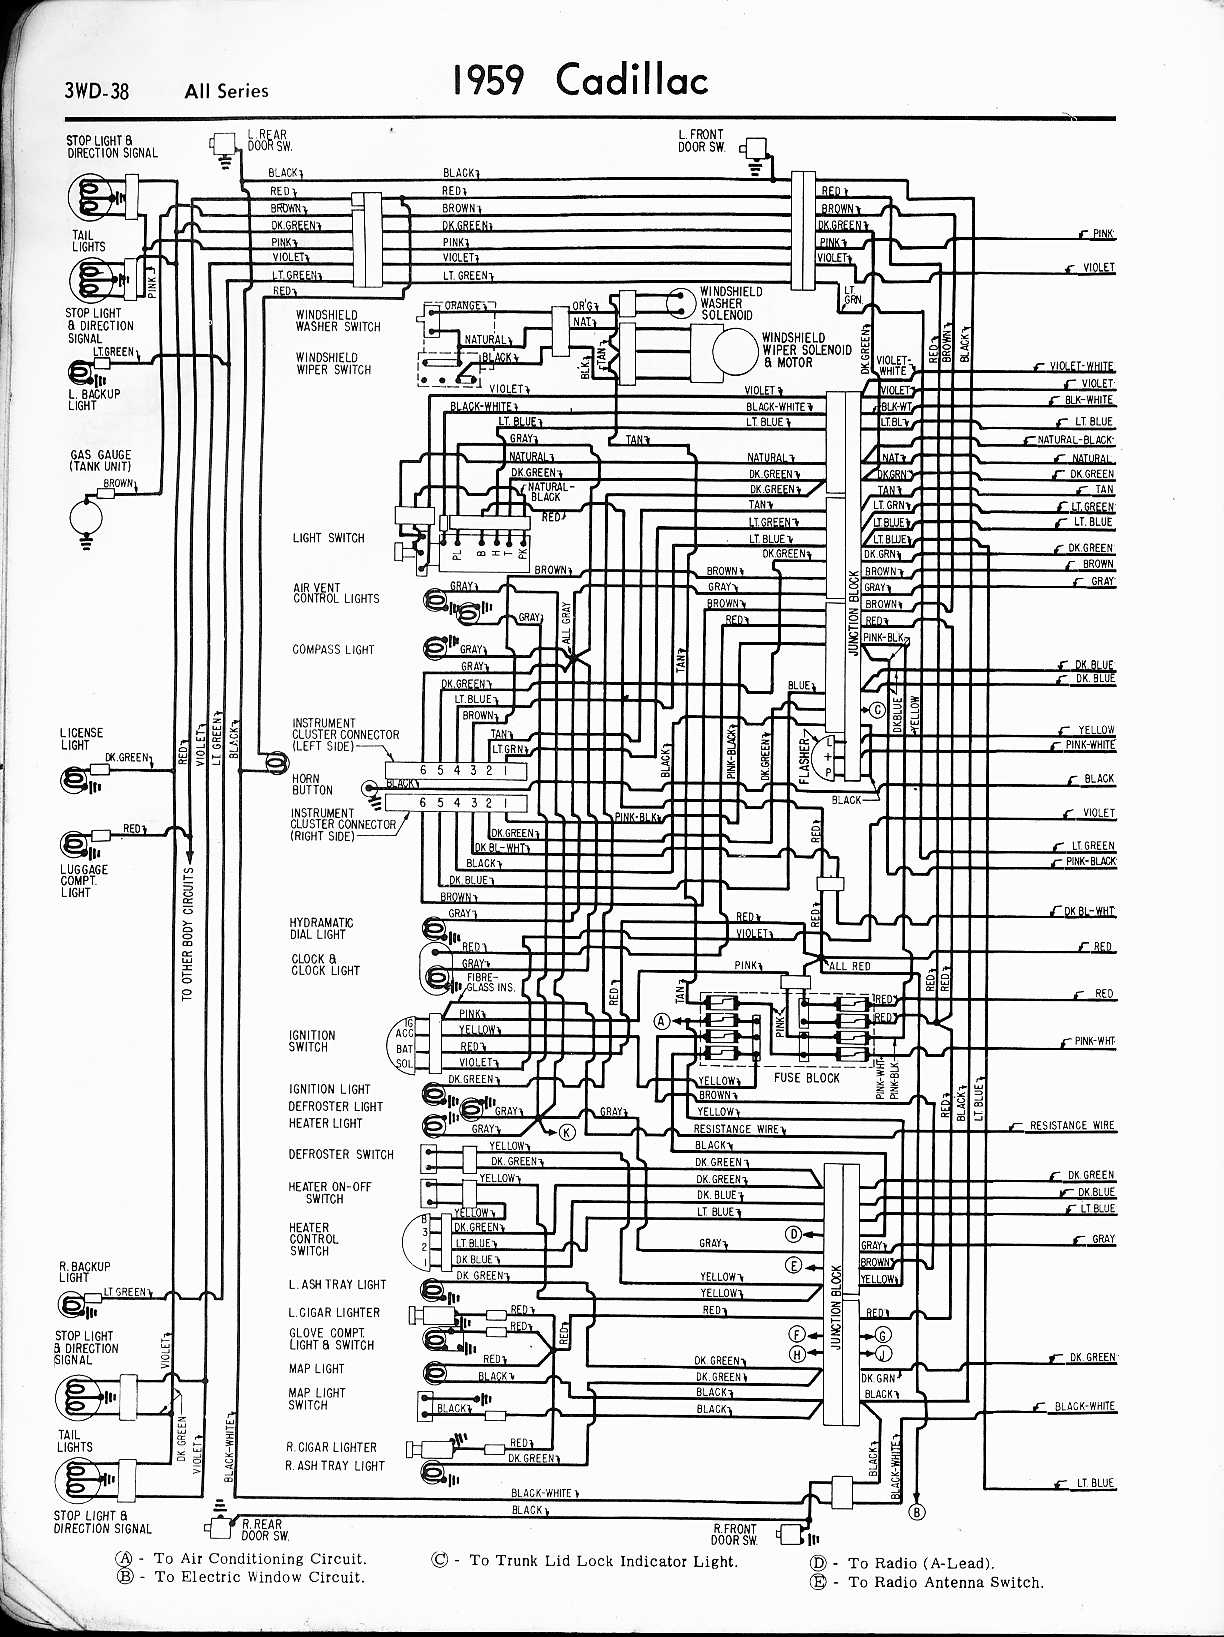 [SCHEMATICS_4CA]  Cadillac Wiring Diagrams: 1957-1965 | Cadillac Electrical Wiring Diagrams |  | The Old Car Manual Project